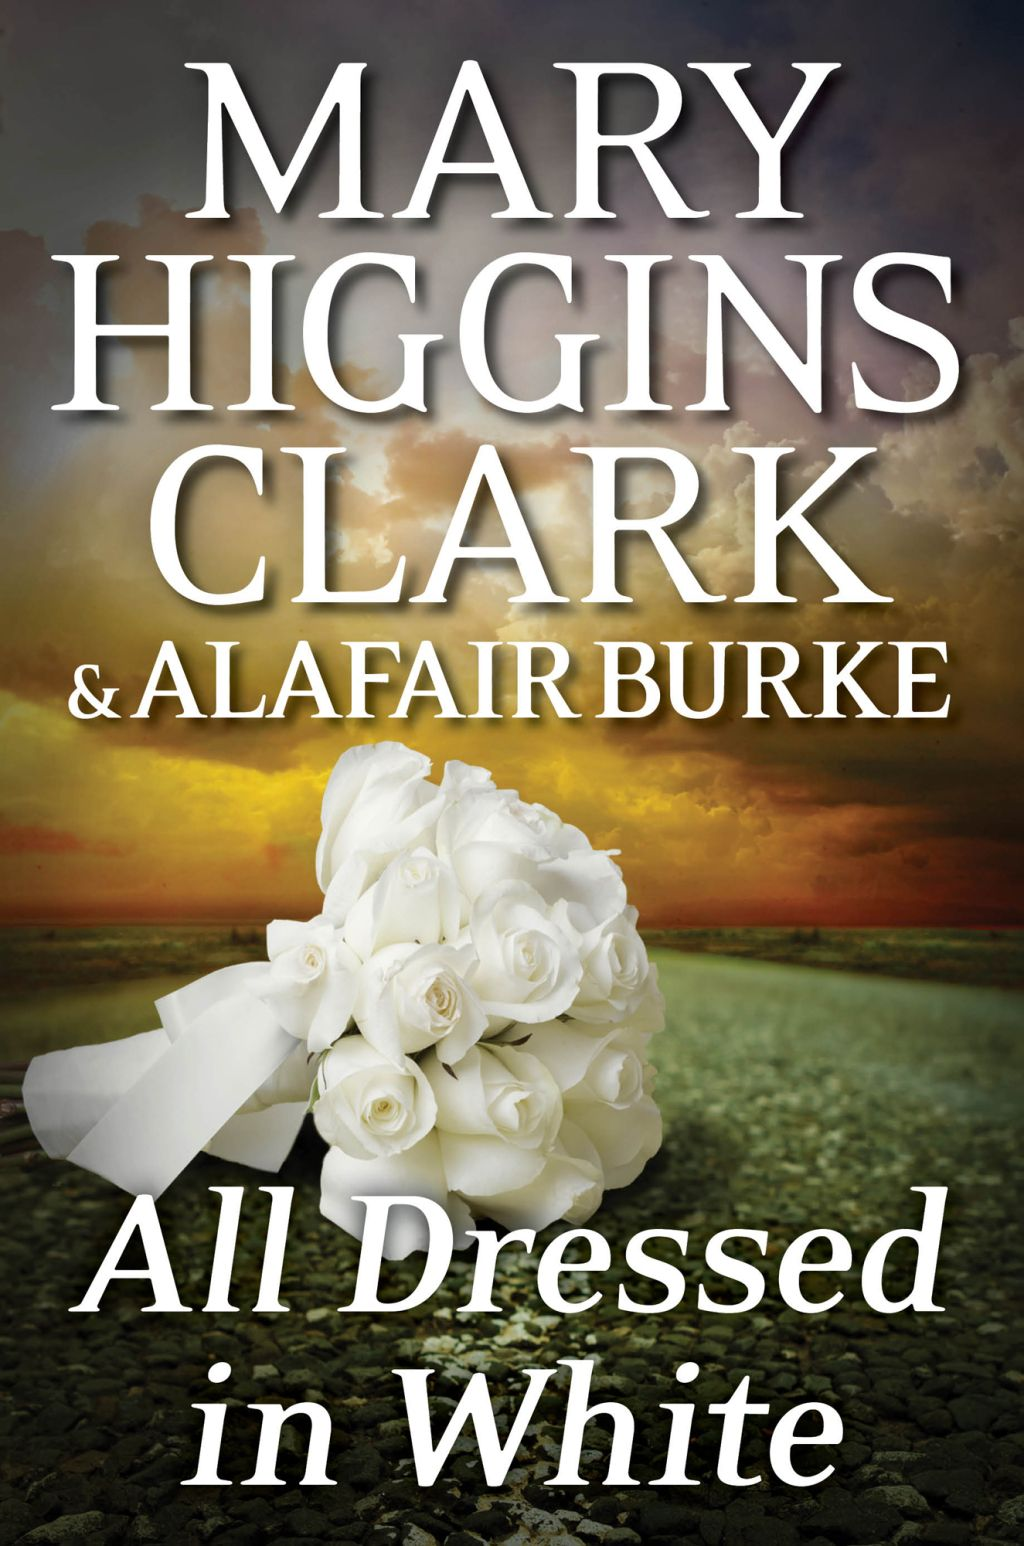 All Dressed in White (eBook) in 2019 Mary higgins clark